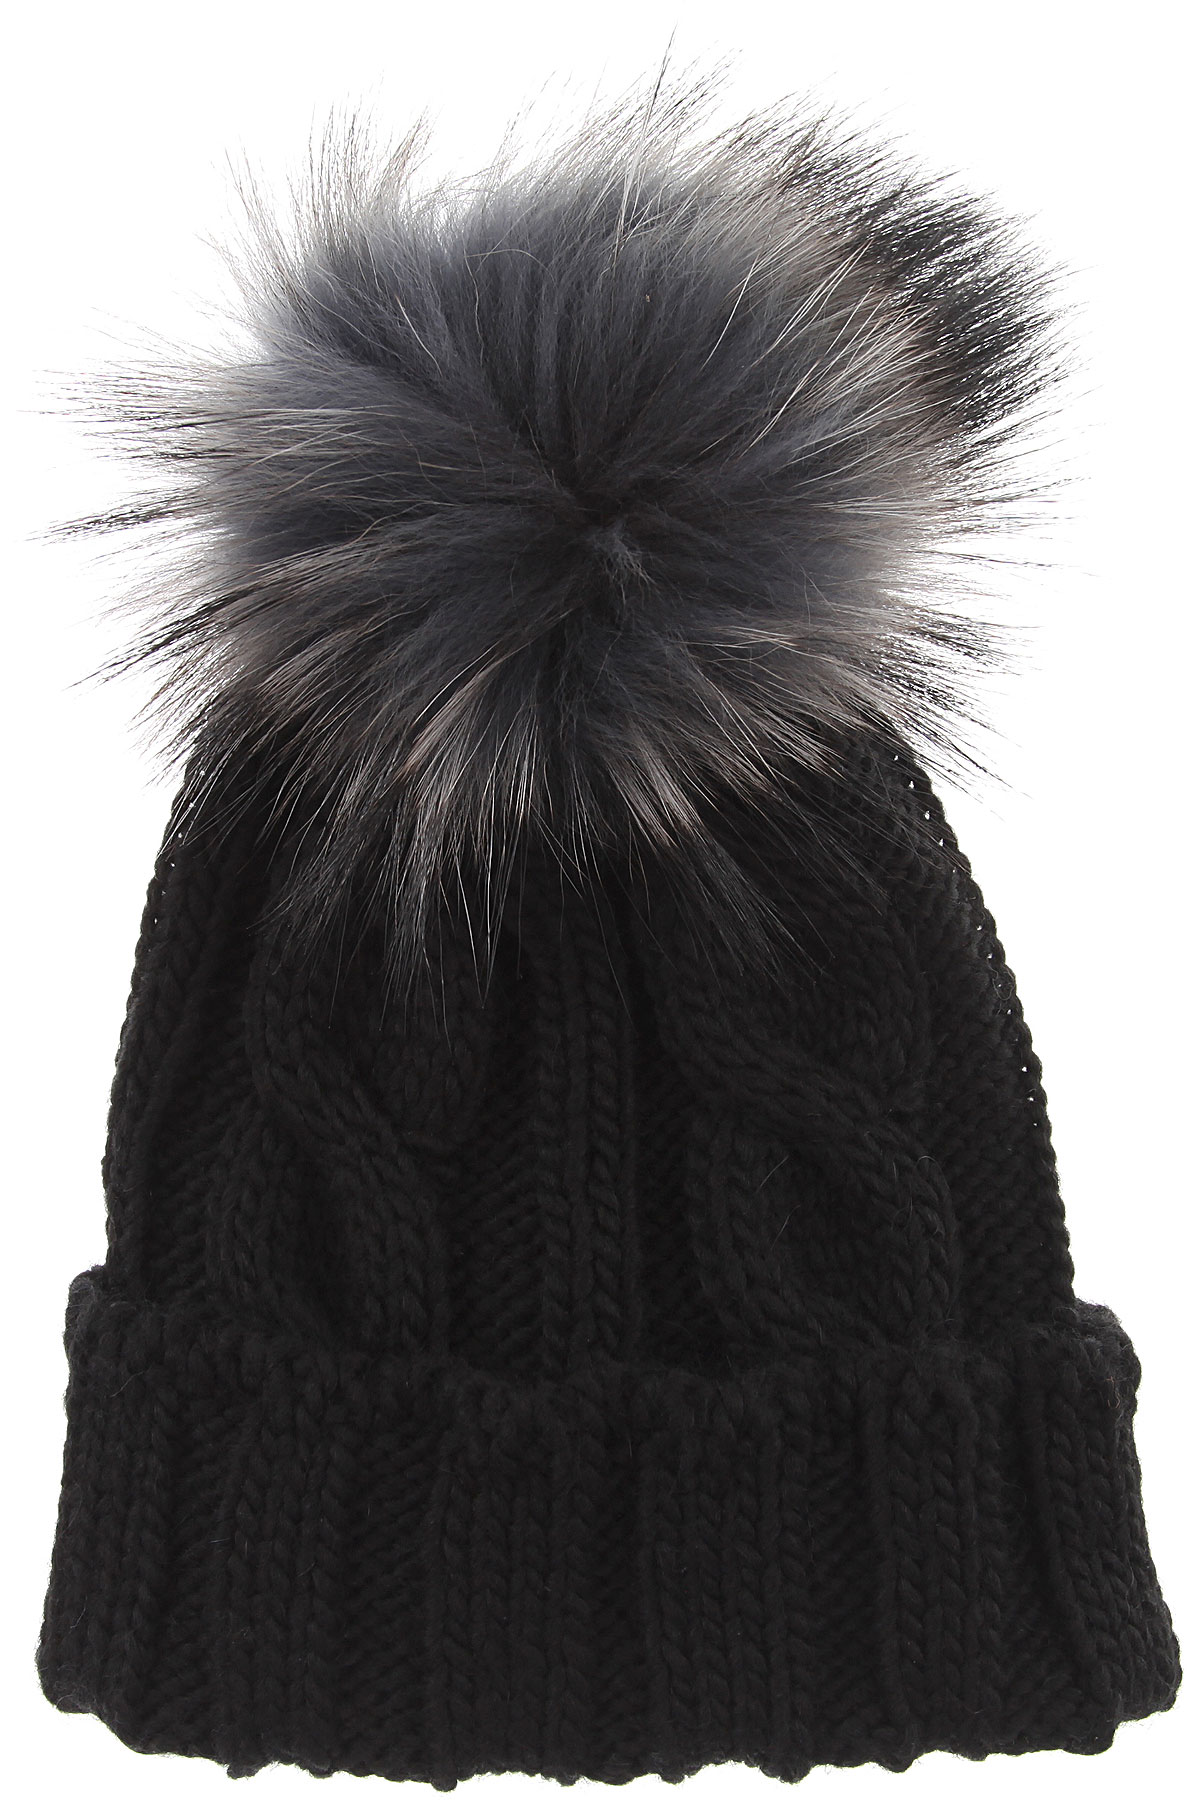 Image of Canadian Classic Kids Hats for Girls, Black, Acrylic, 2017, S M L